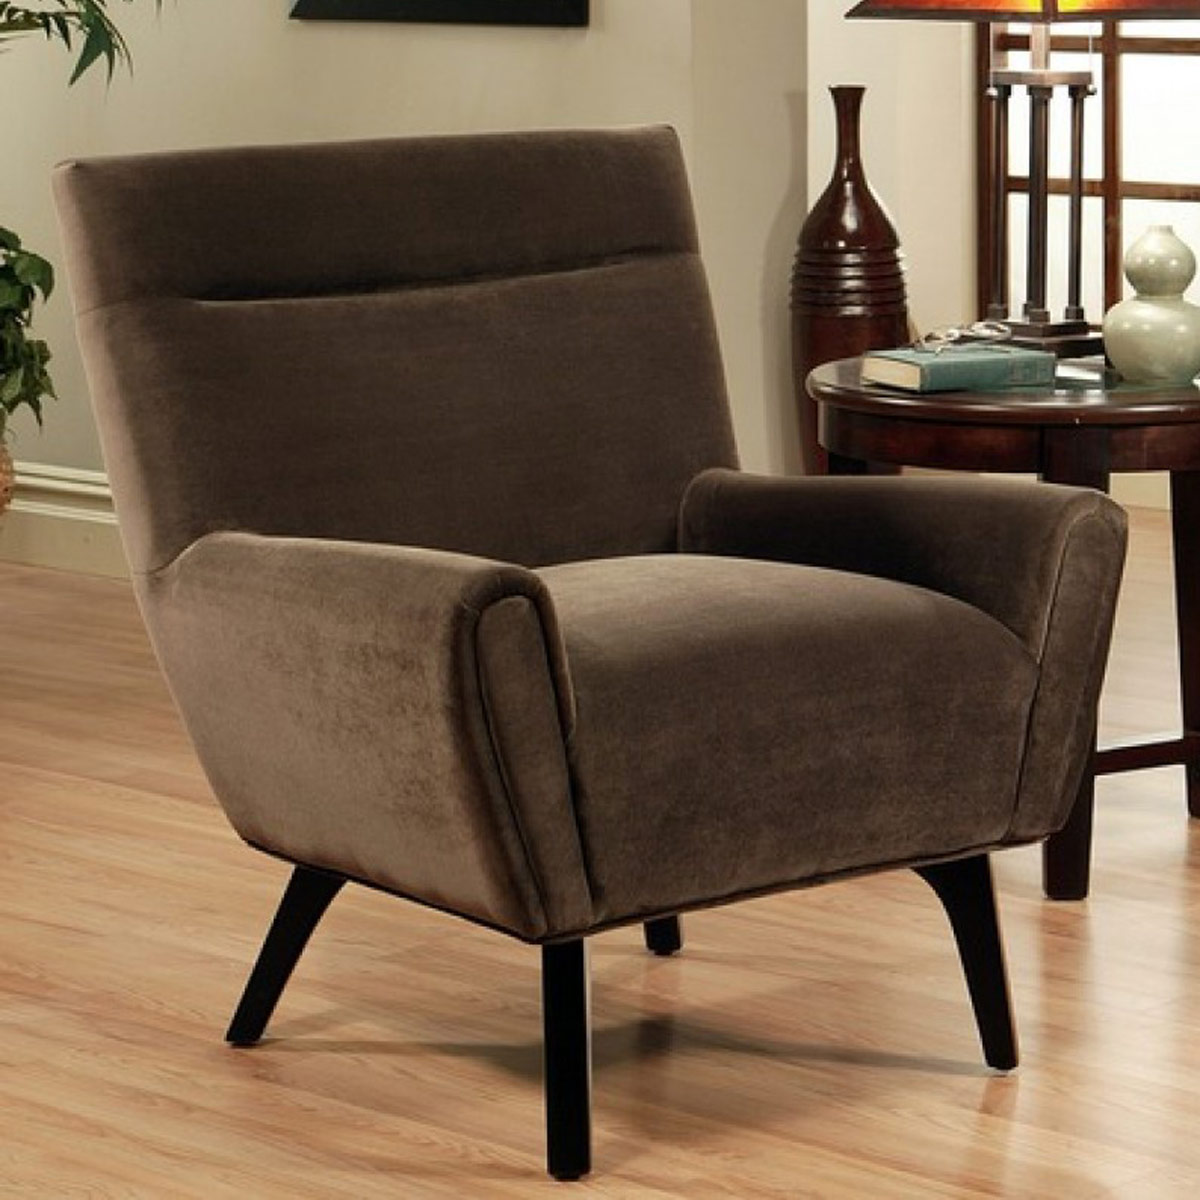 dark brown microsuede armchair abbyson living 34 w x 33 d x 3